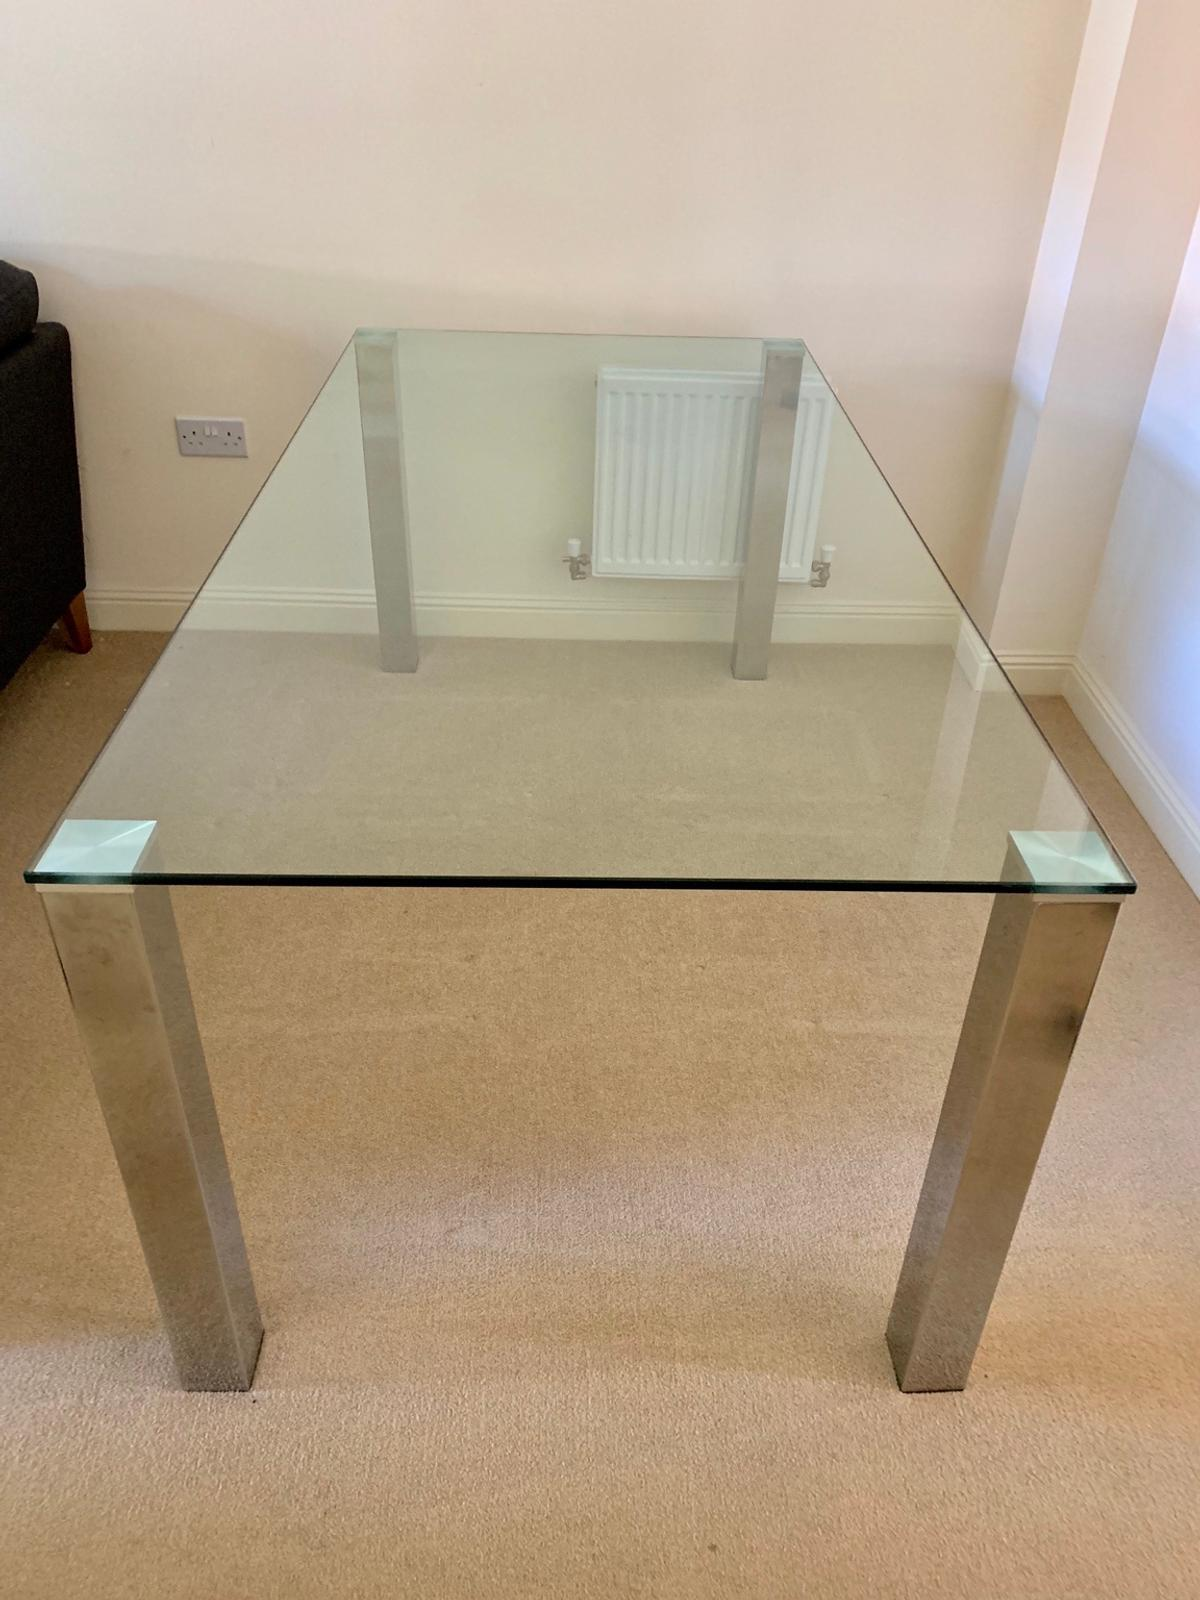 Large Glass Dining Table Chrome Legs In Hp13 Wycombe For 200 00